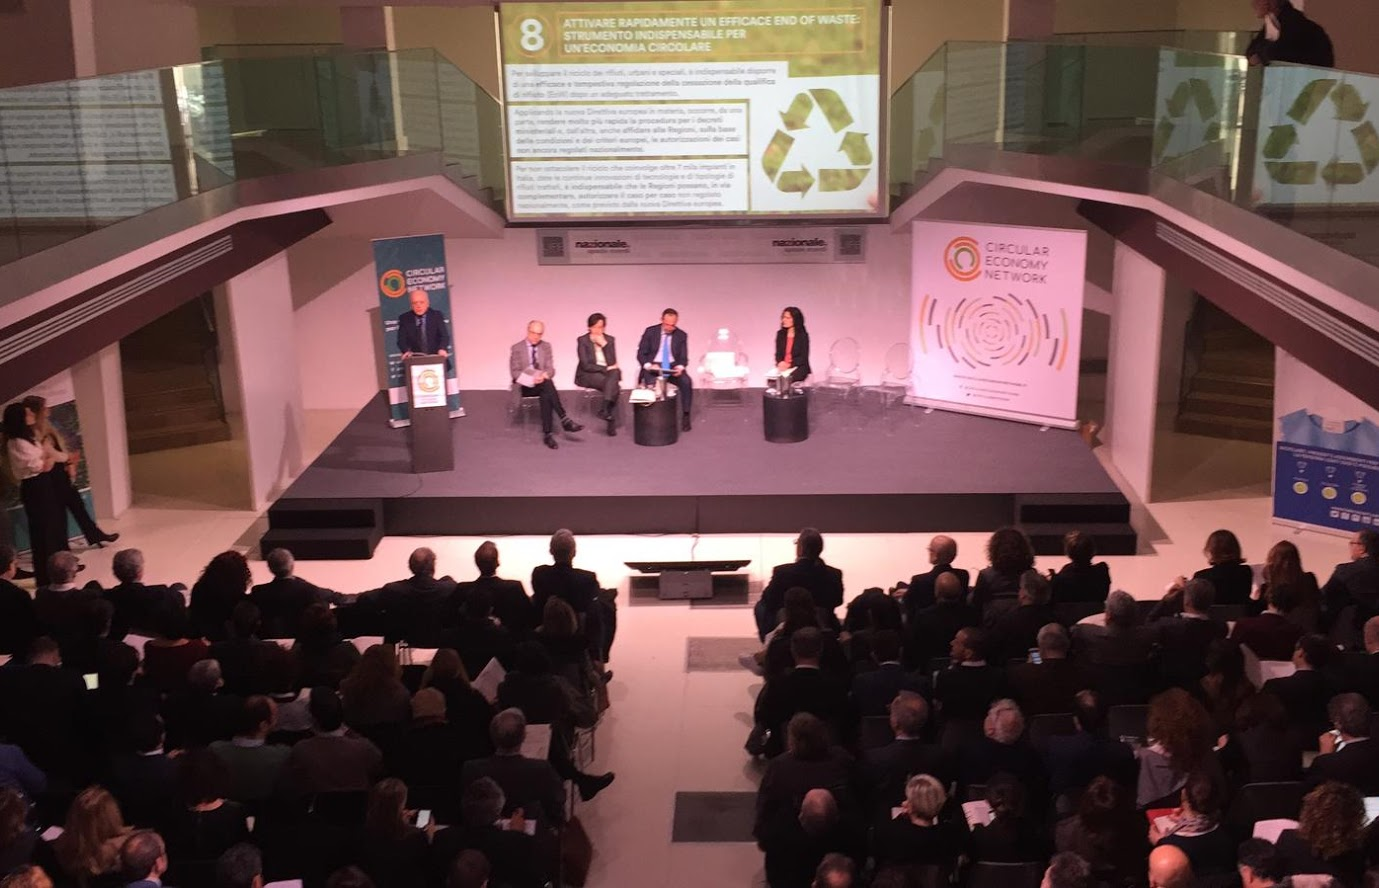 Economia circolare - Photo credit: Circular Economy Network